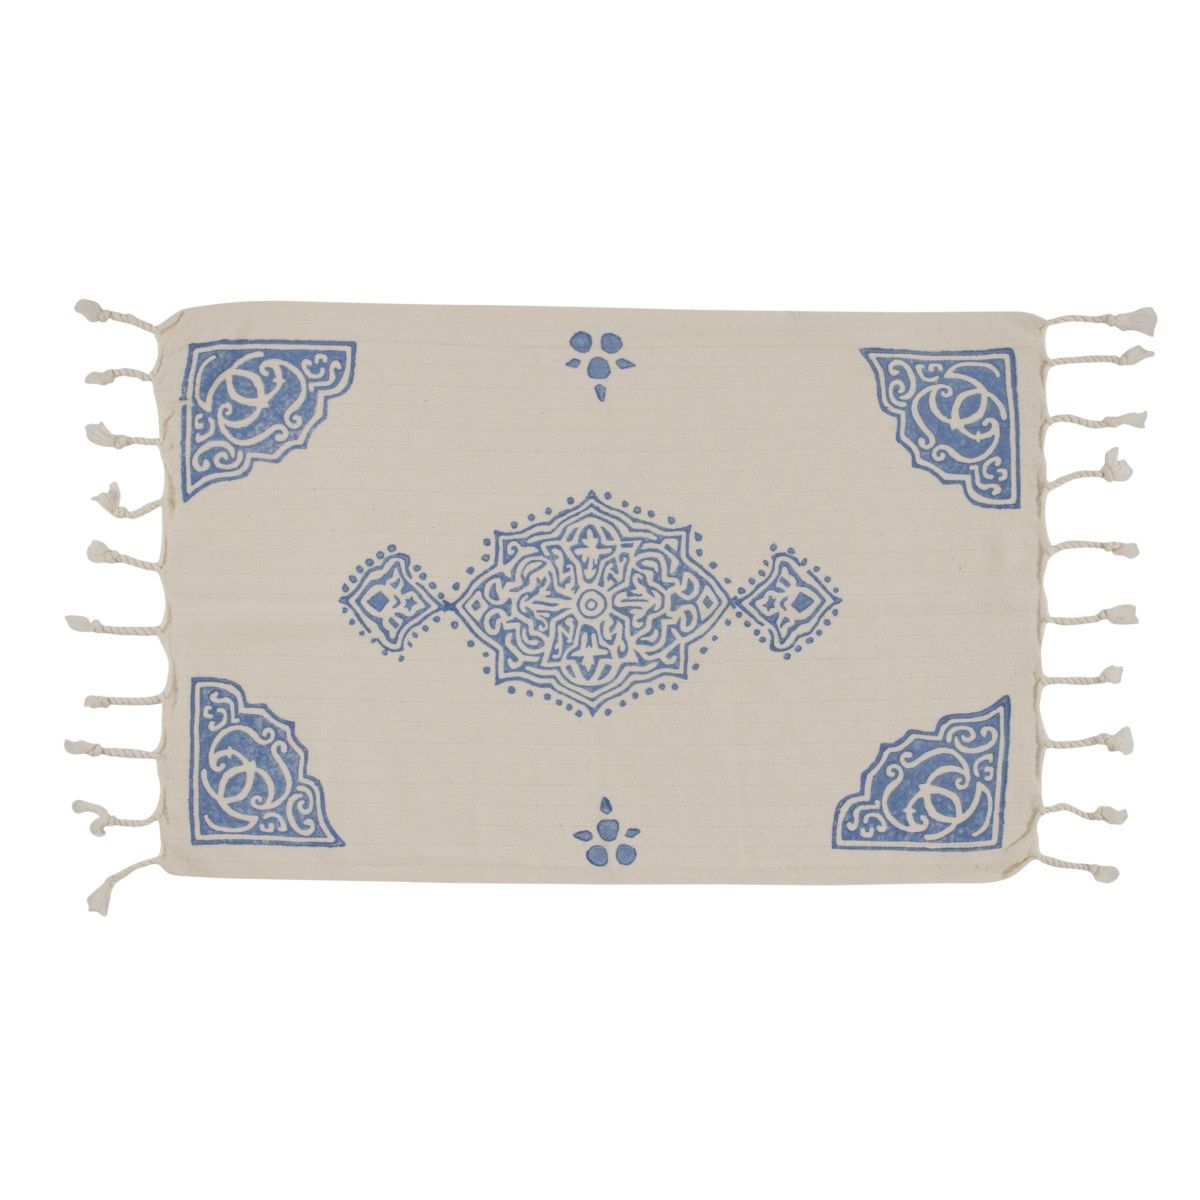 Peshkir Mini Towel - Hand Printed 02 / Blue (30x50)